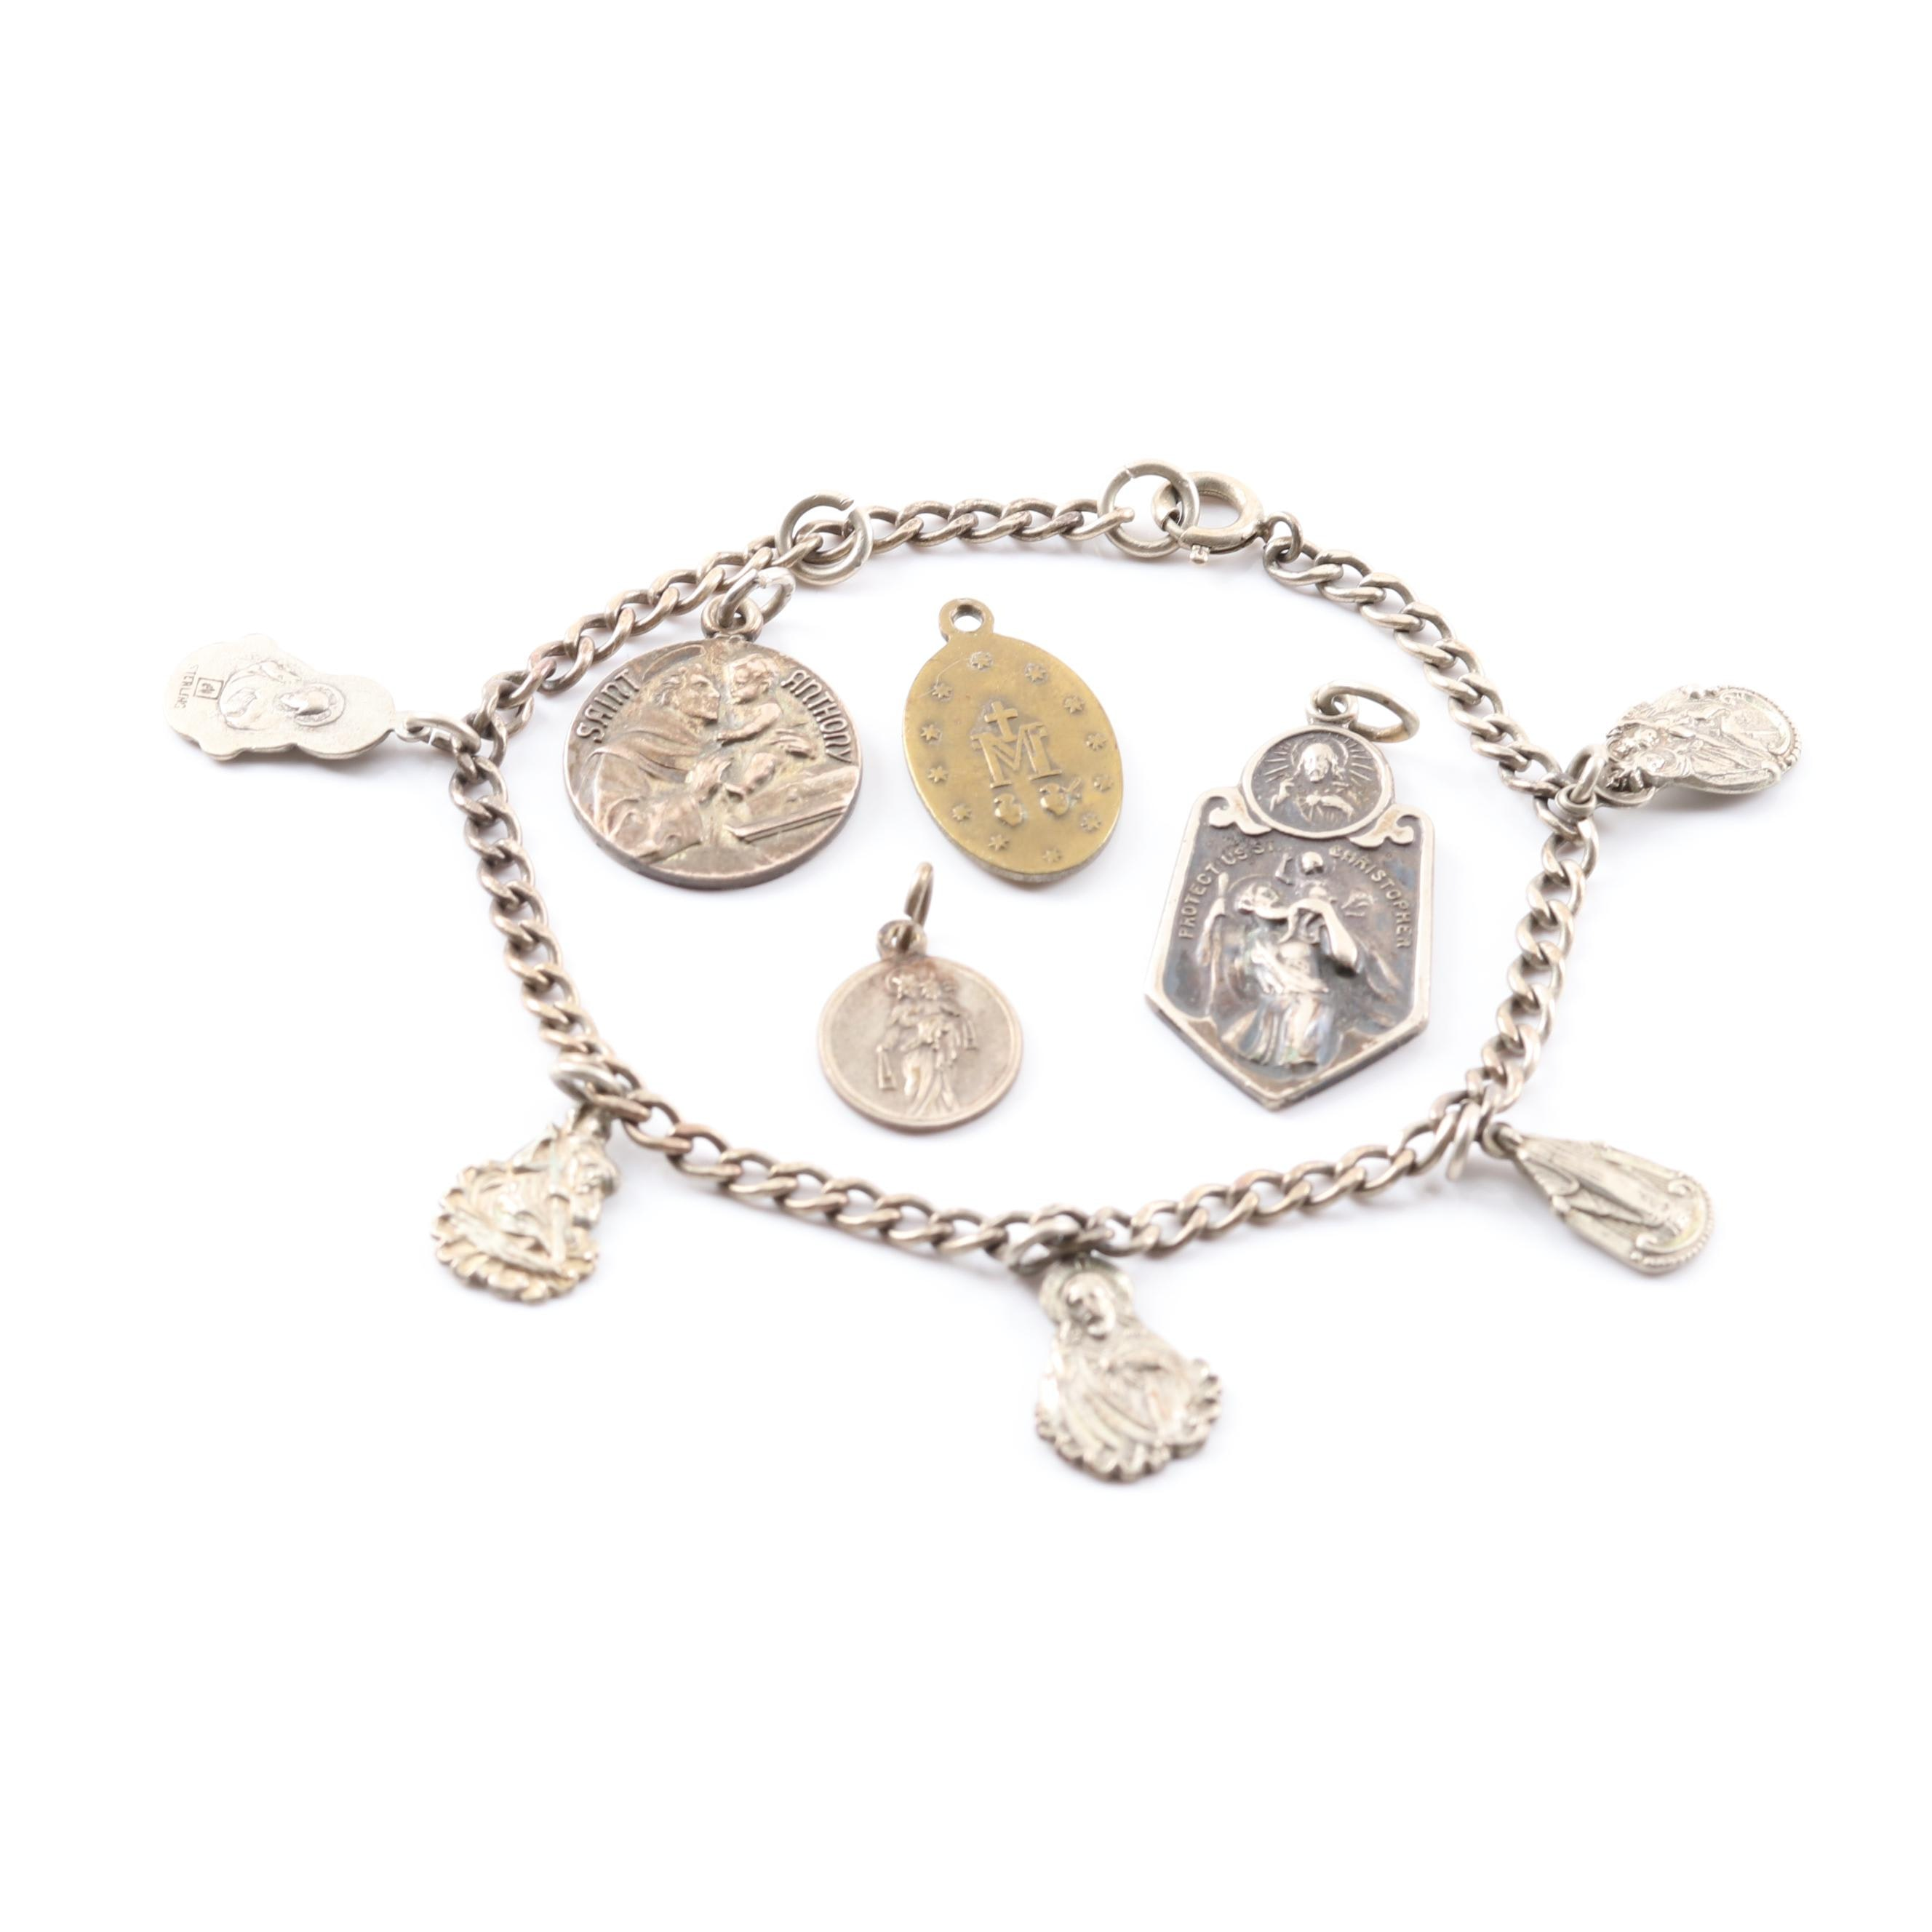 Sterling Silver Themed Charm Bracelet and Charms